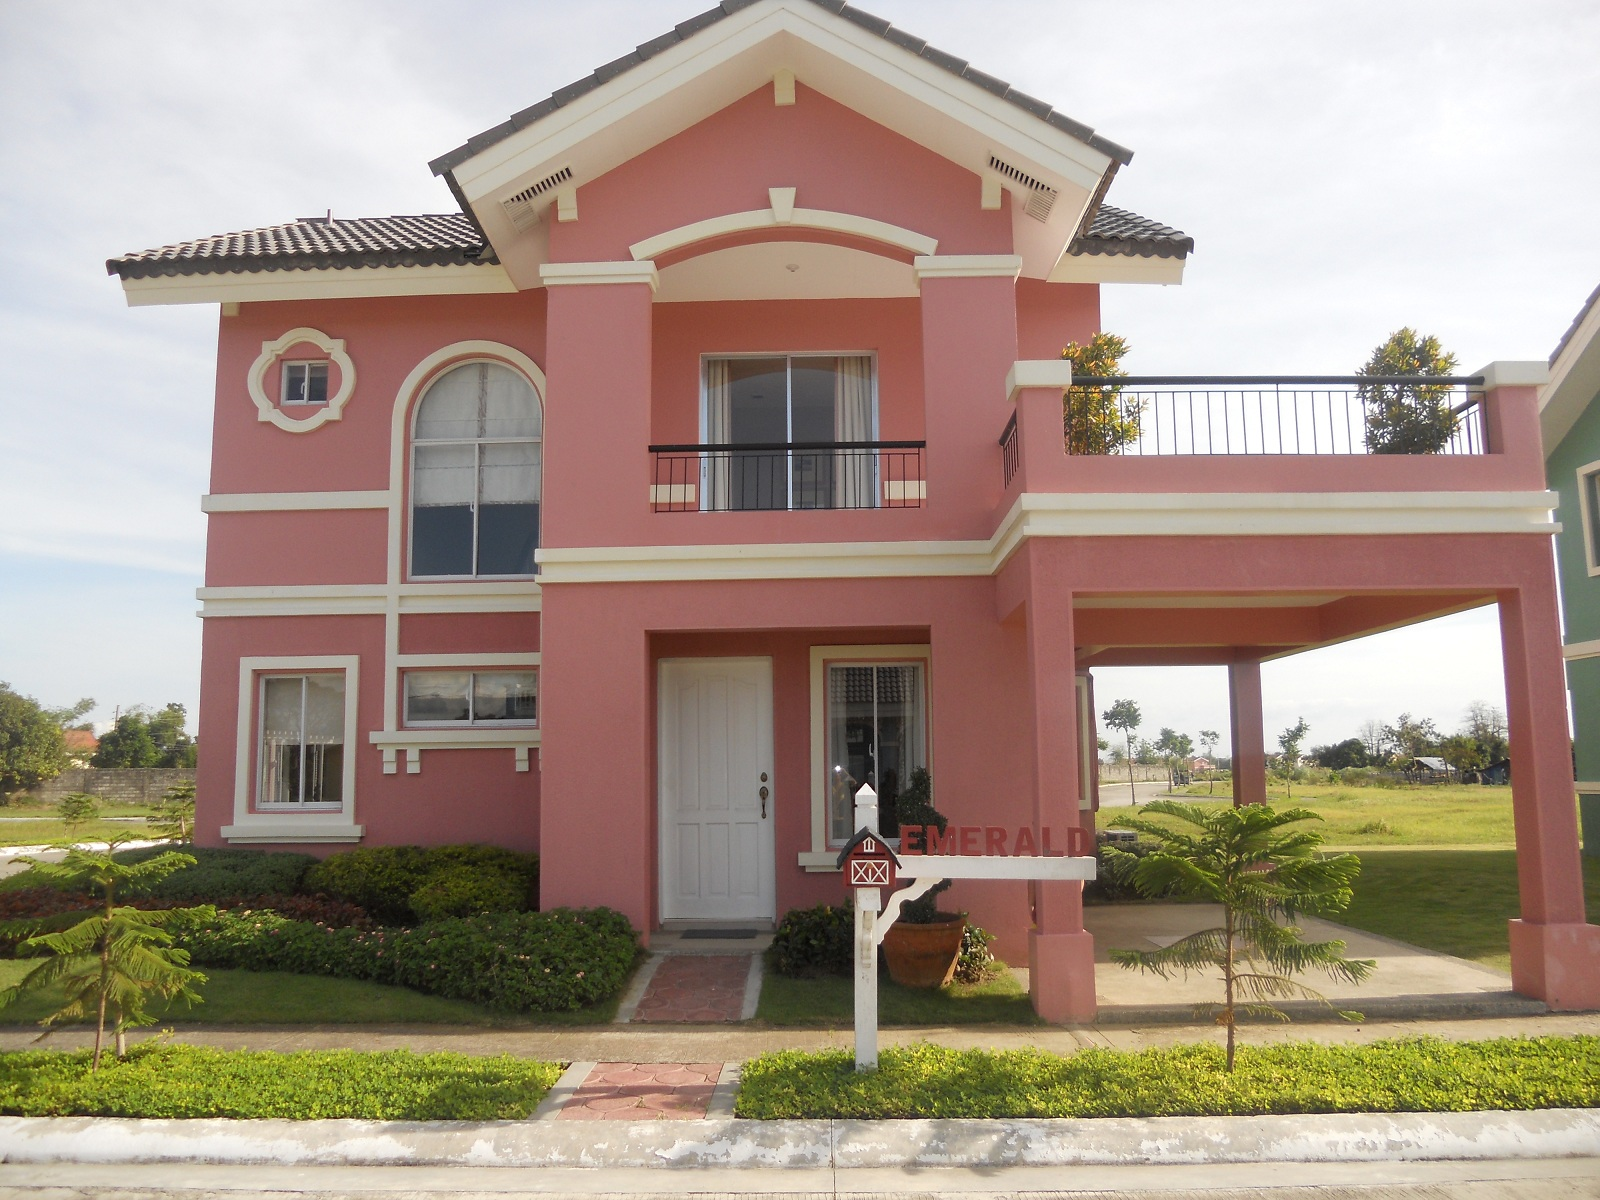 Crossandra Or Emerald Model House Of Savannah Trails Iloilo By Camella Homes Erecre Group Realty Design And Construction